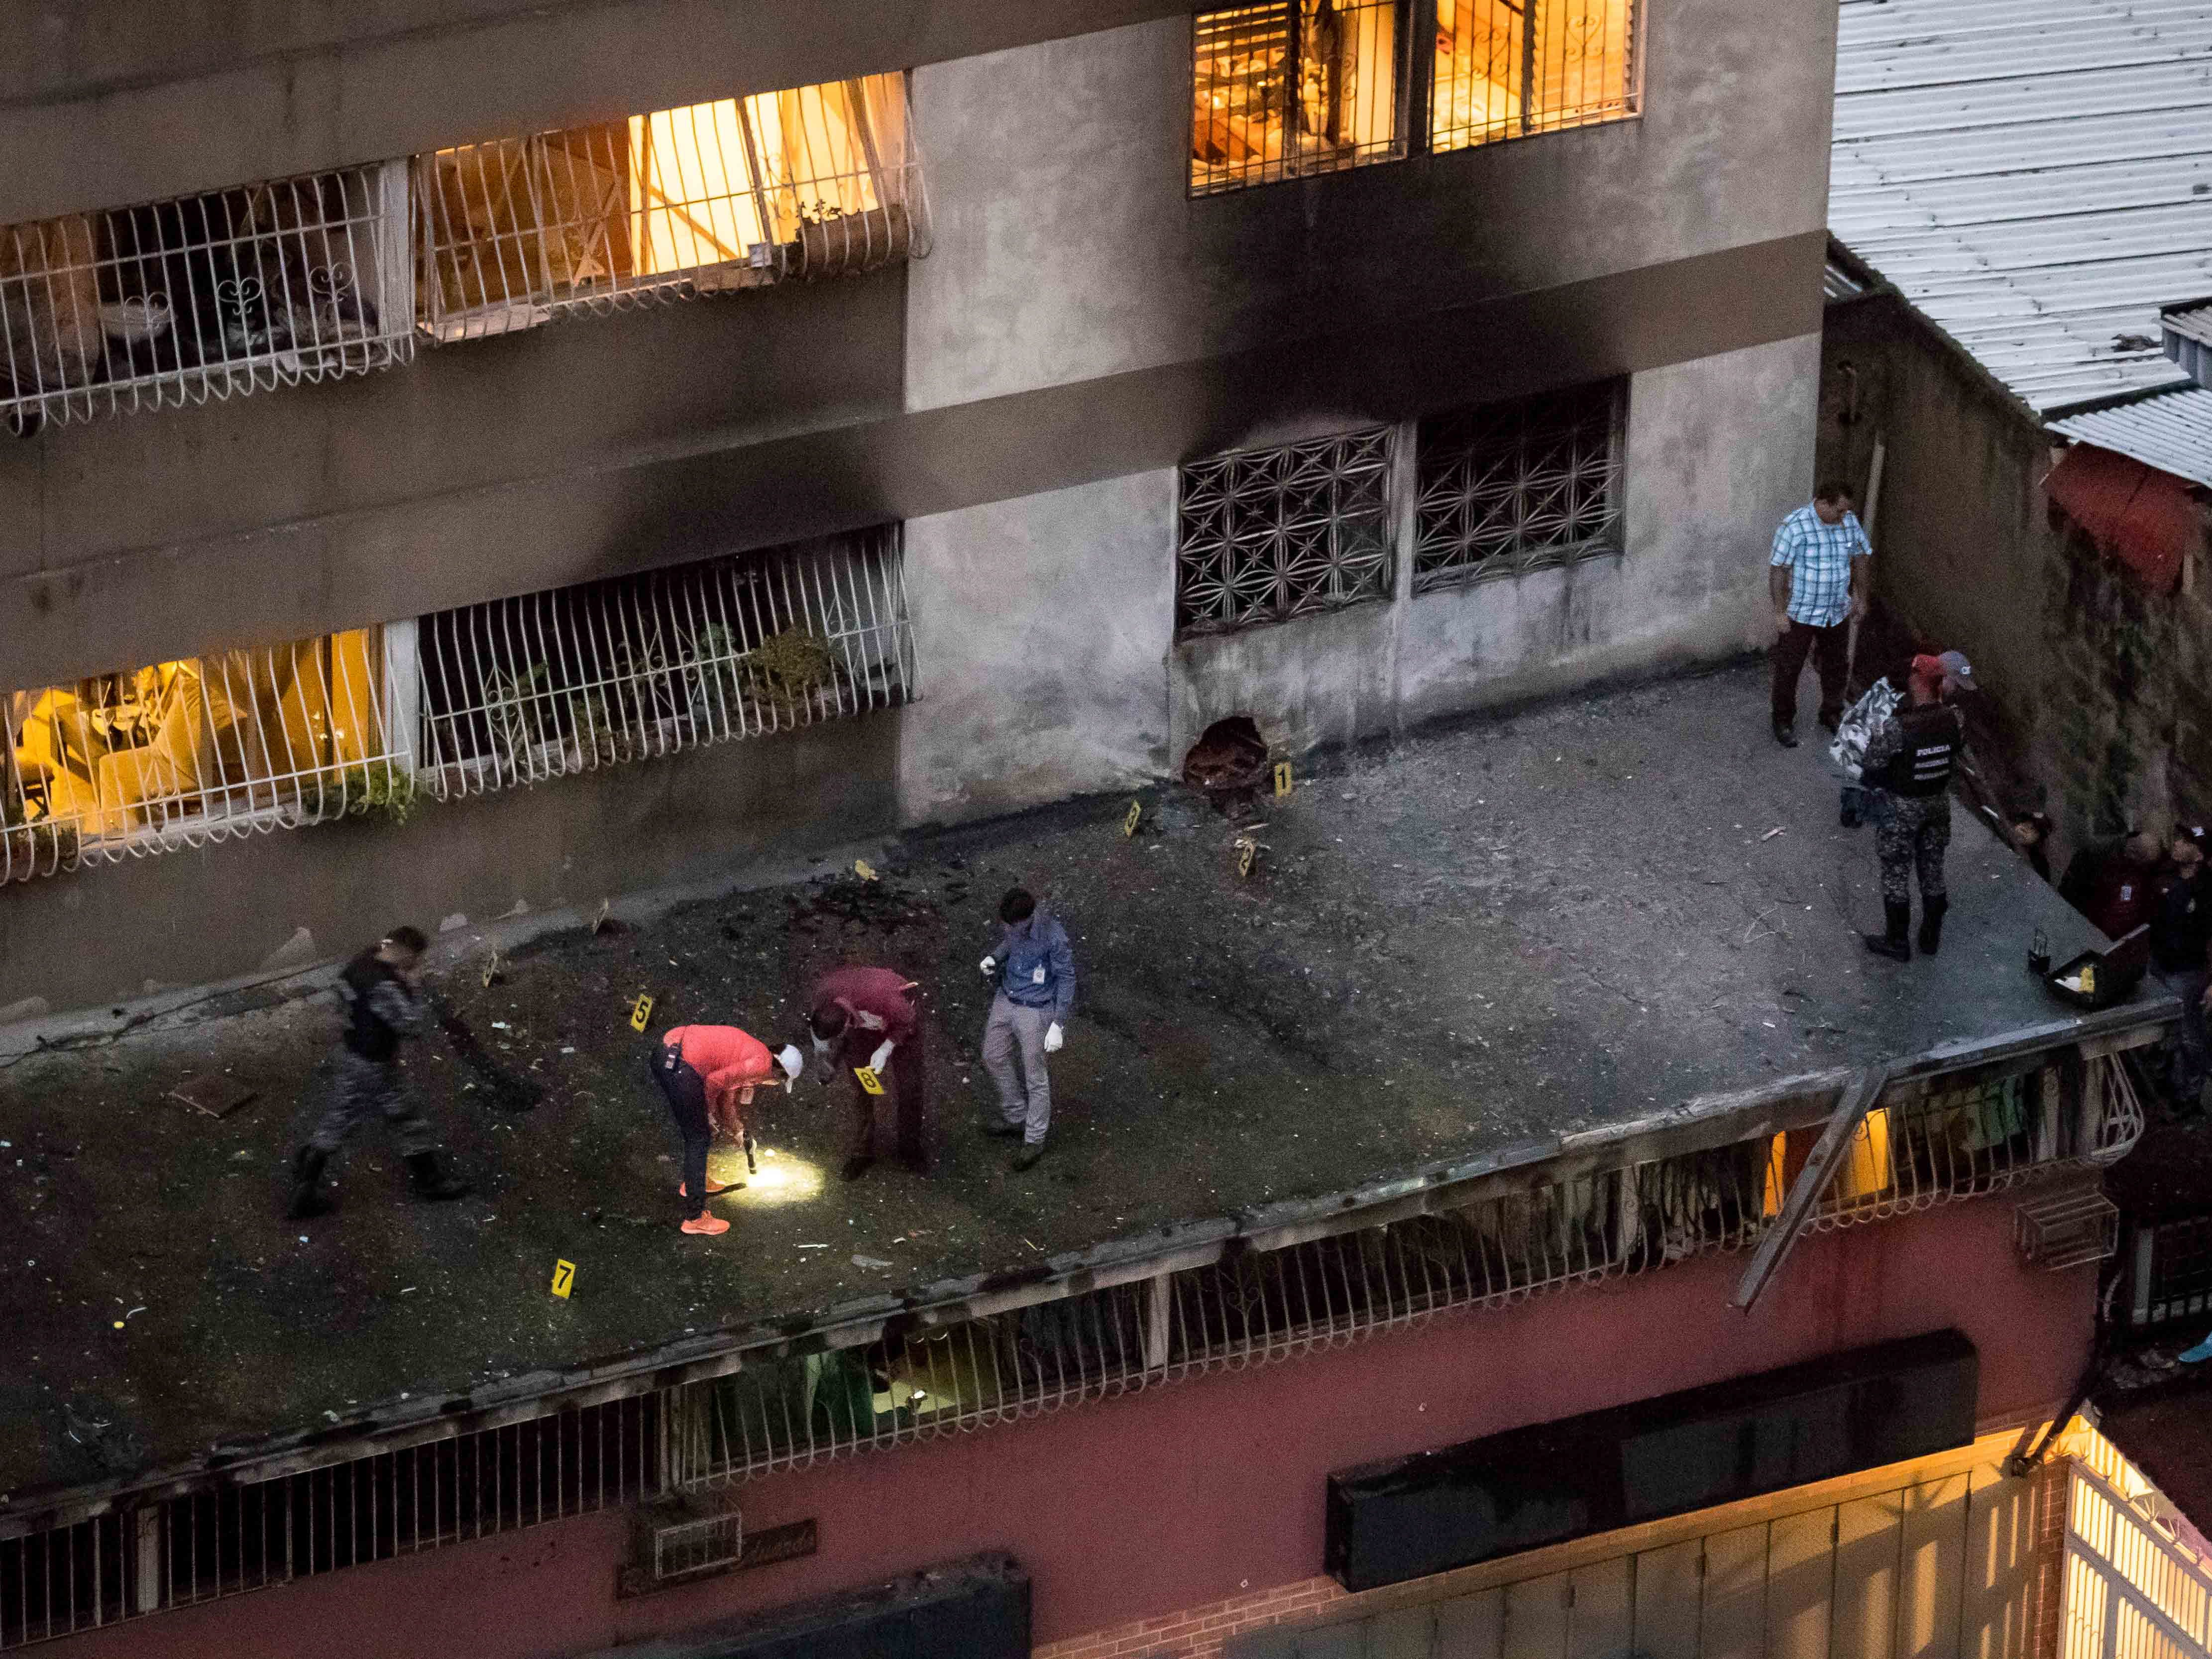 Members of different security forces stand guard and take evidence after an explosion targeted President Nicolas Maduro, in Caracas, Venezuela, 04 August 2018.